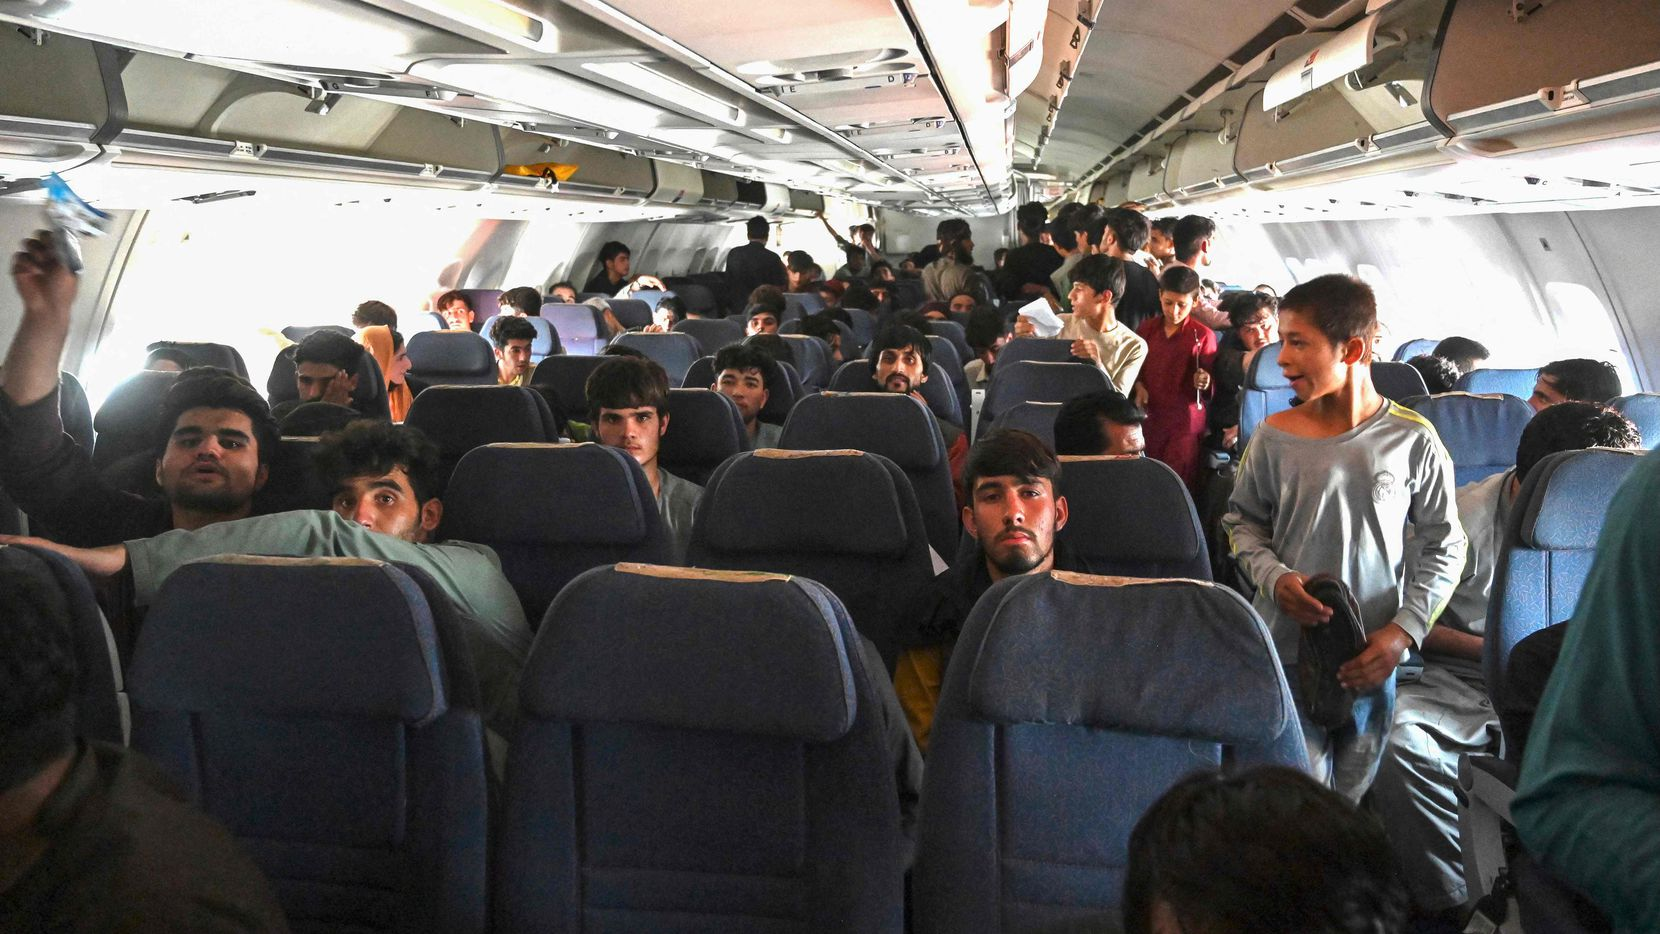 Afghan passengers sit inside a plane as they wait to leave the Kabul airport in Kabul on Aug. 16, 2021, after a stunningly swift end to Afghanistan's 20-year war, as thousands of people mobbed the city's airport trying to flee the group's feared hard-line brand of Islamist rule.